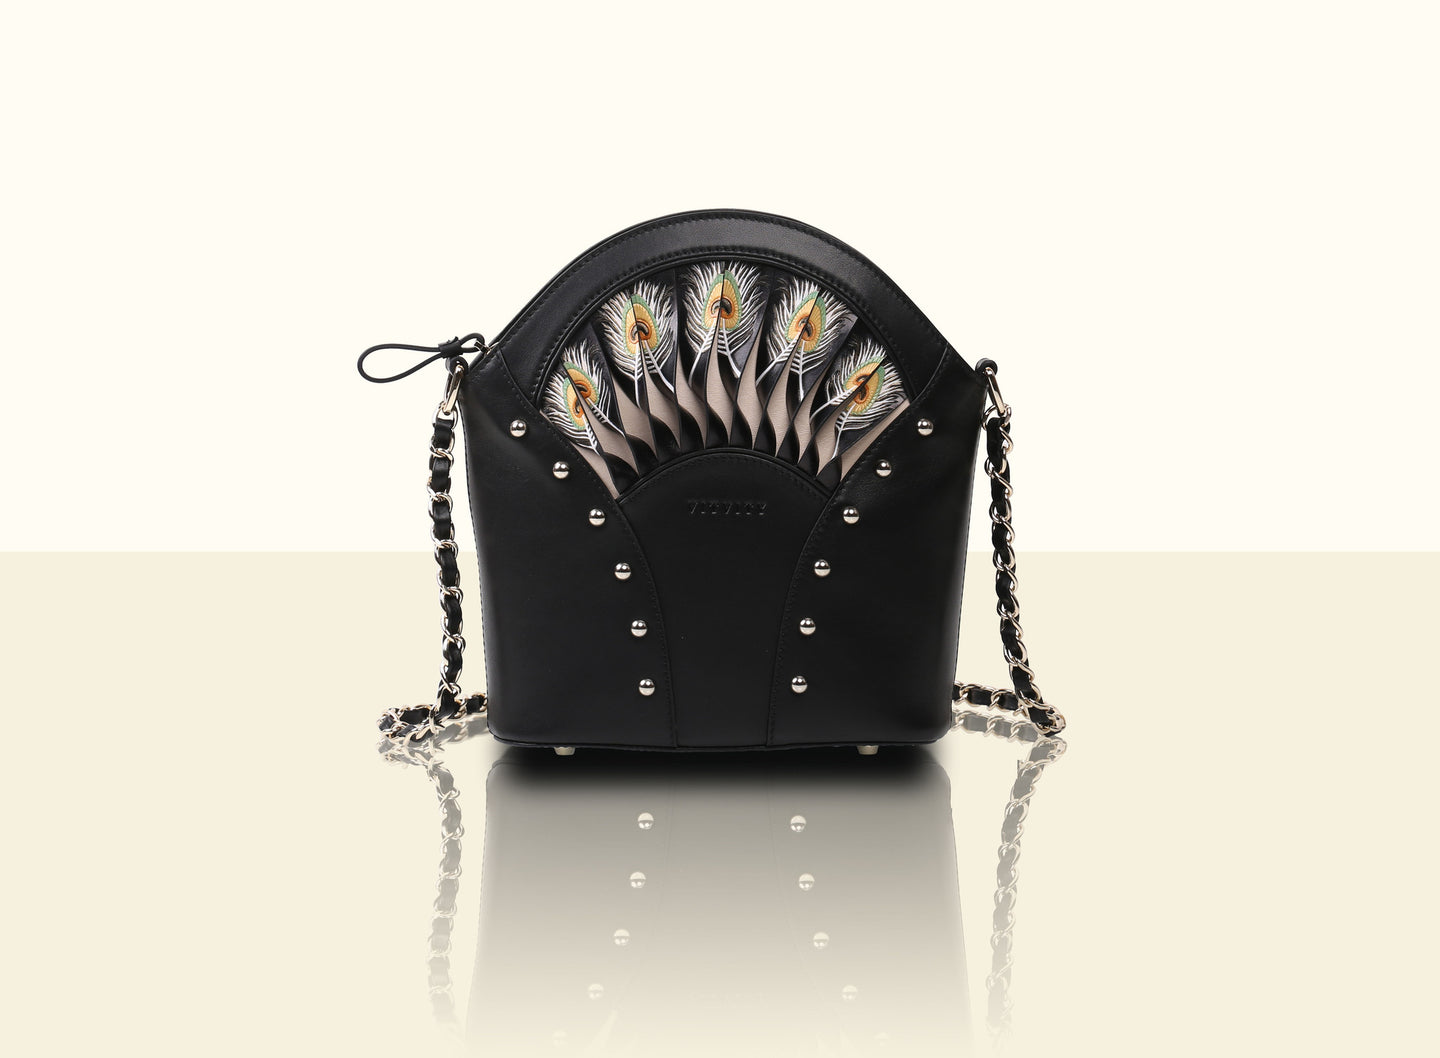 Exquisite Fan Crossbody (Small) - Black